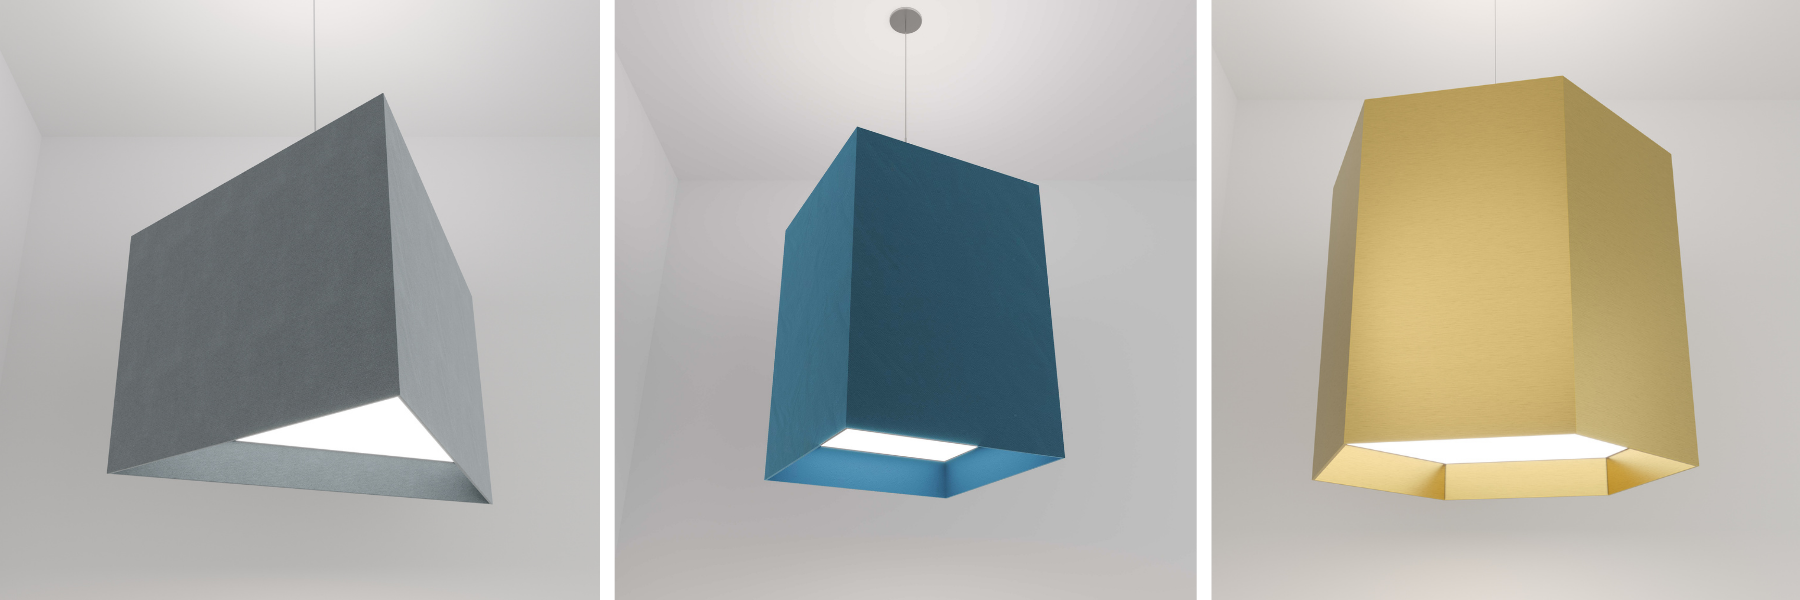 Geometric suspended LED pendant lights with acoustic felt.